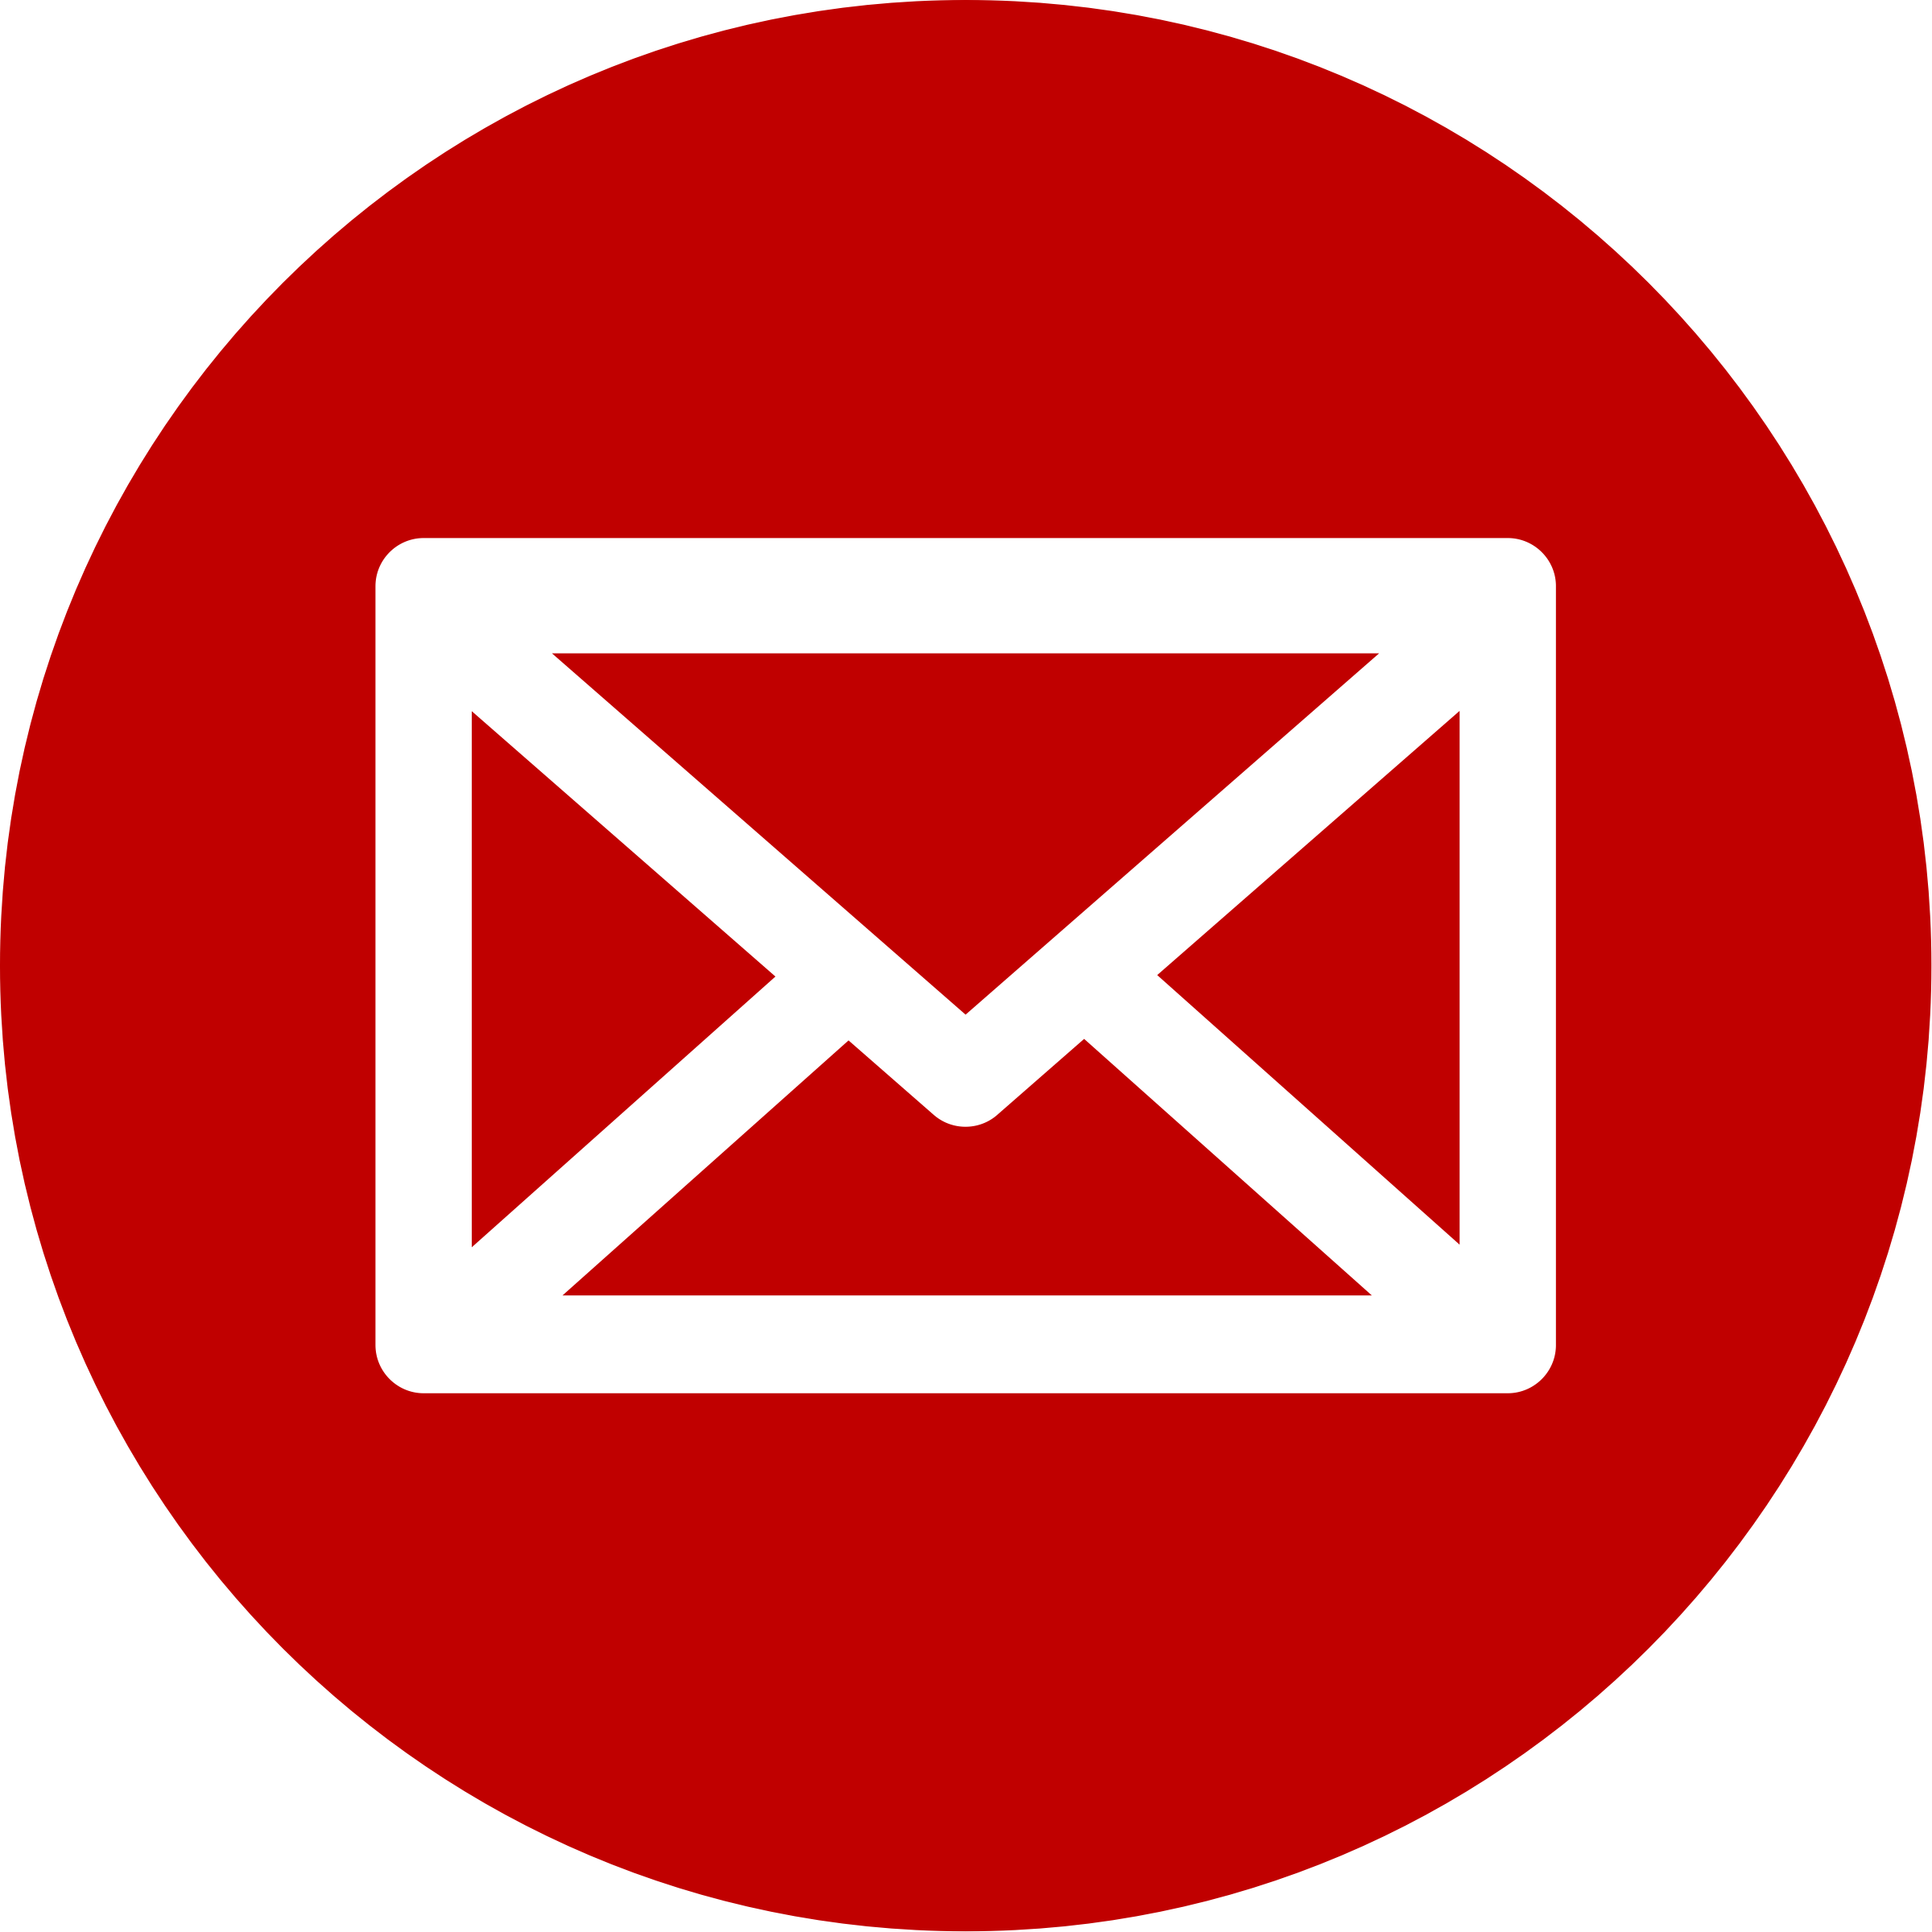 Email computer icons signature. Mail clipart mail icon